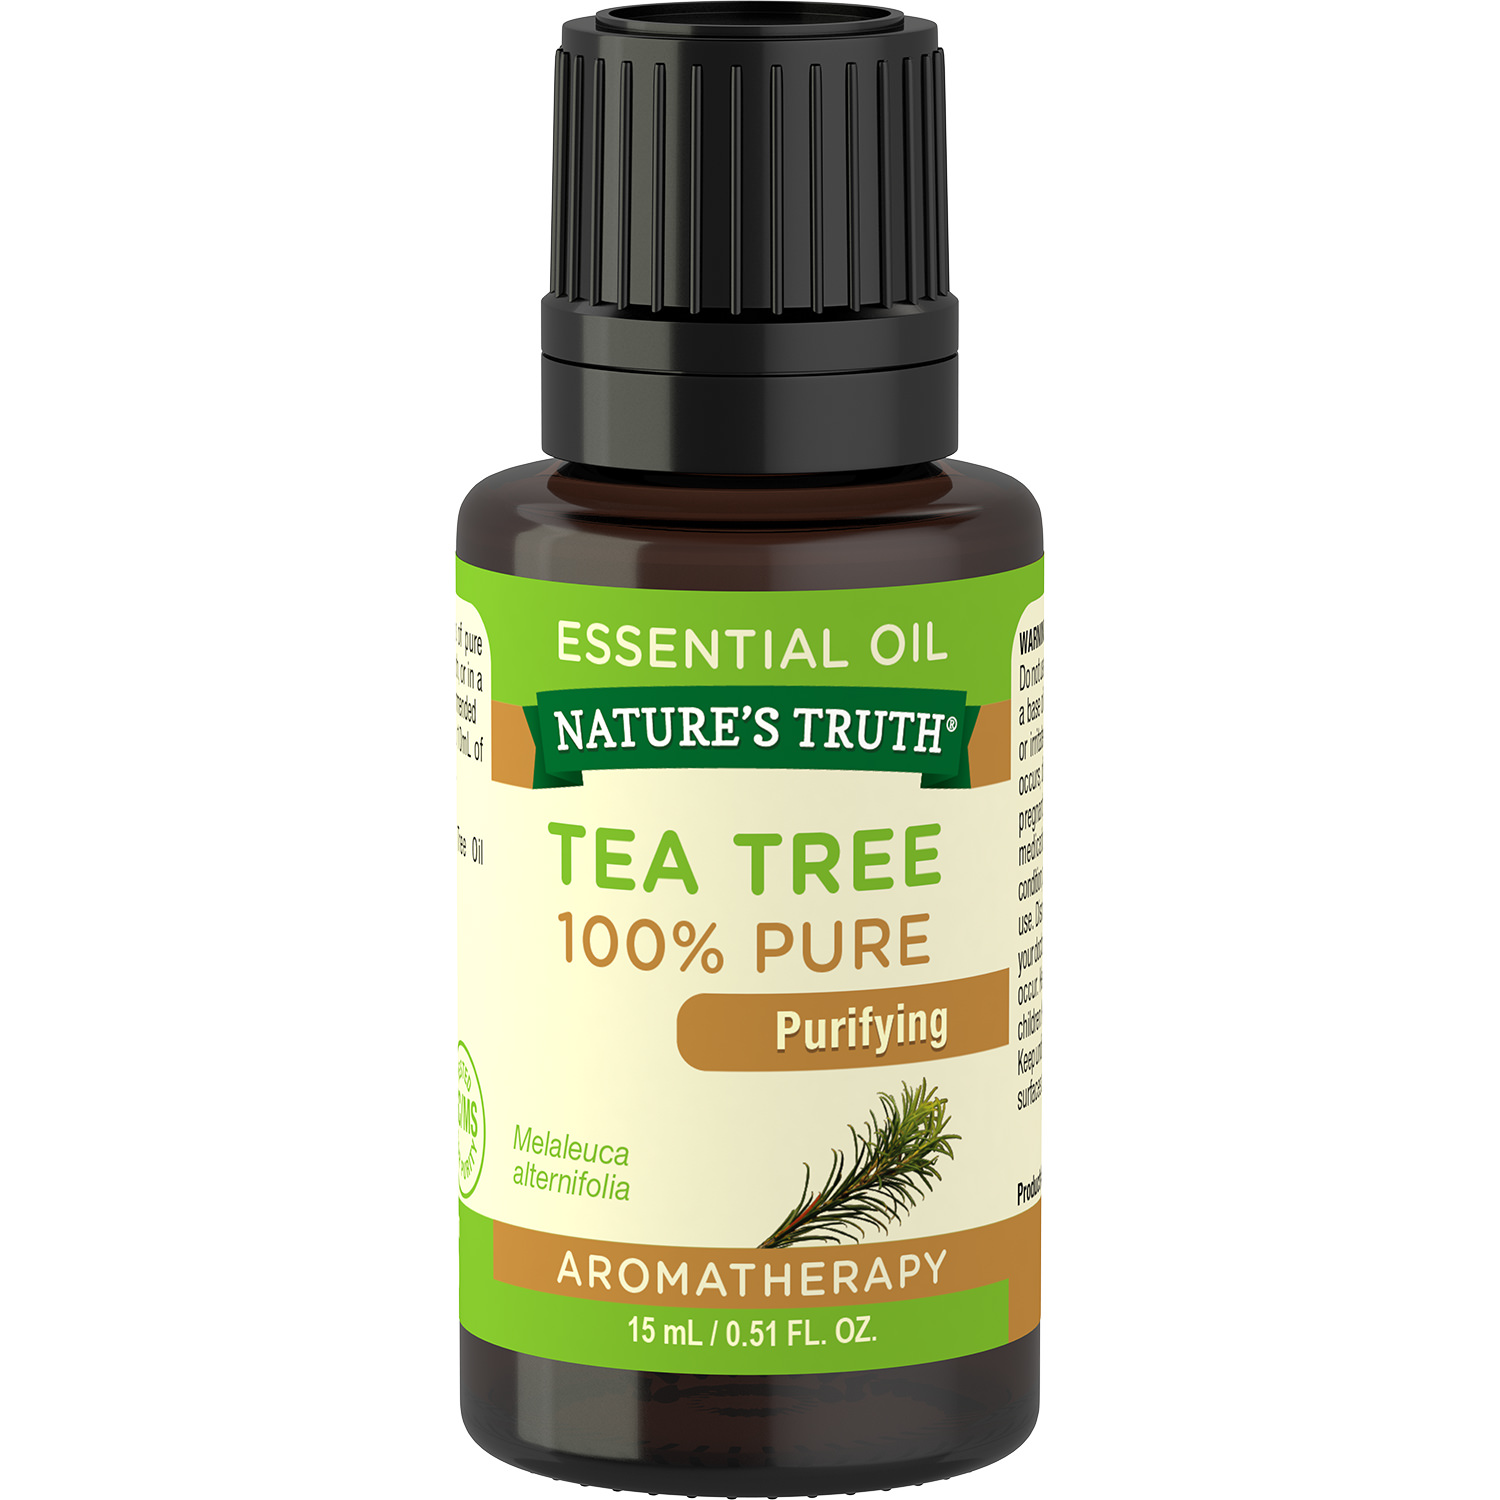 Nature's Truth Aromatherapy 100% Pure Essential Oil, Tea Tree, 0.51 Fl Oz